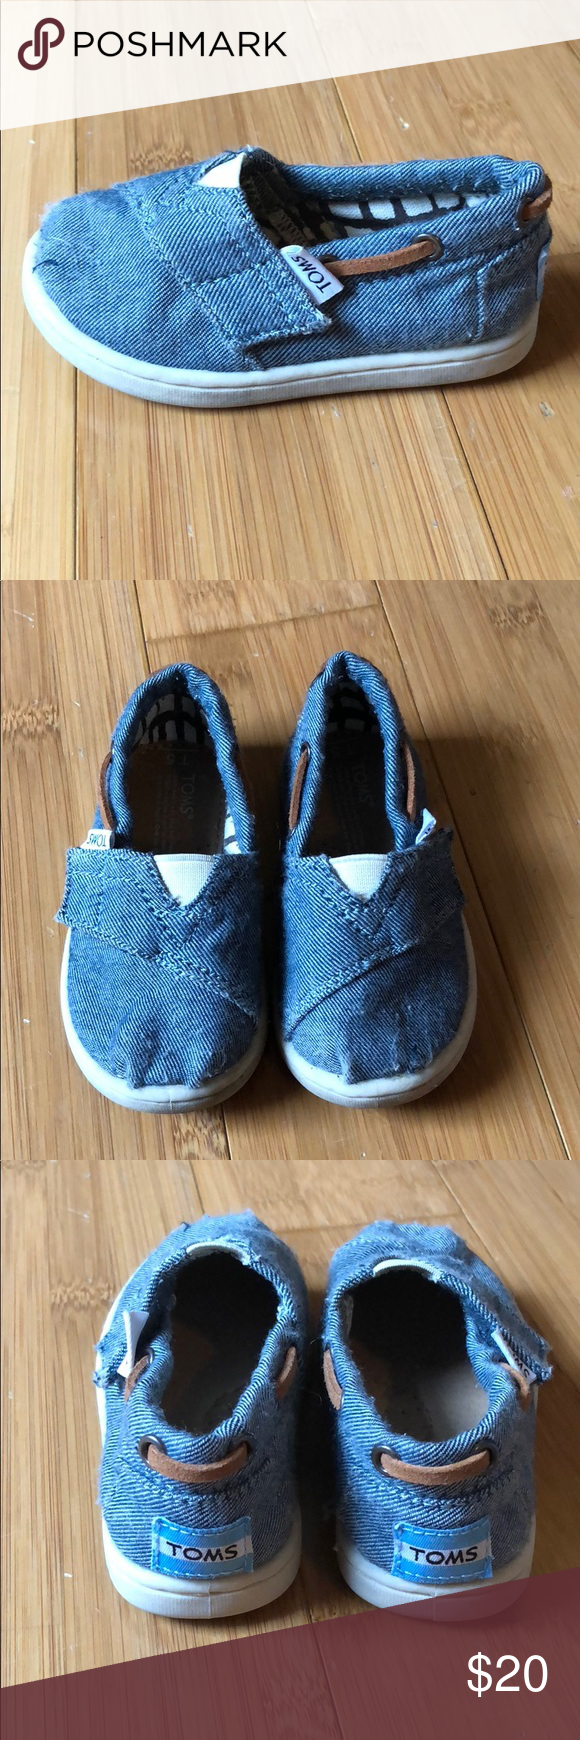 07409441716 Toddler TOMS Bimini Chambray Casual Shoe size 5 very good condition - lots  of life left